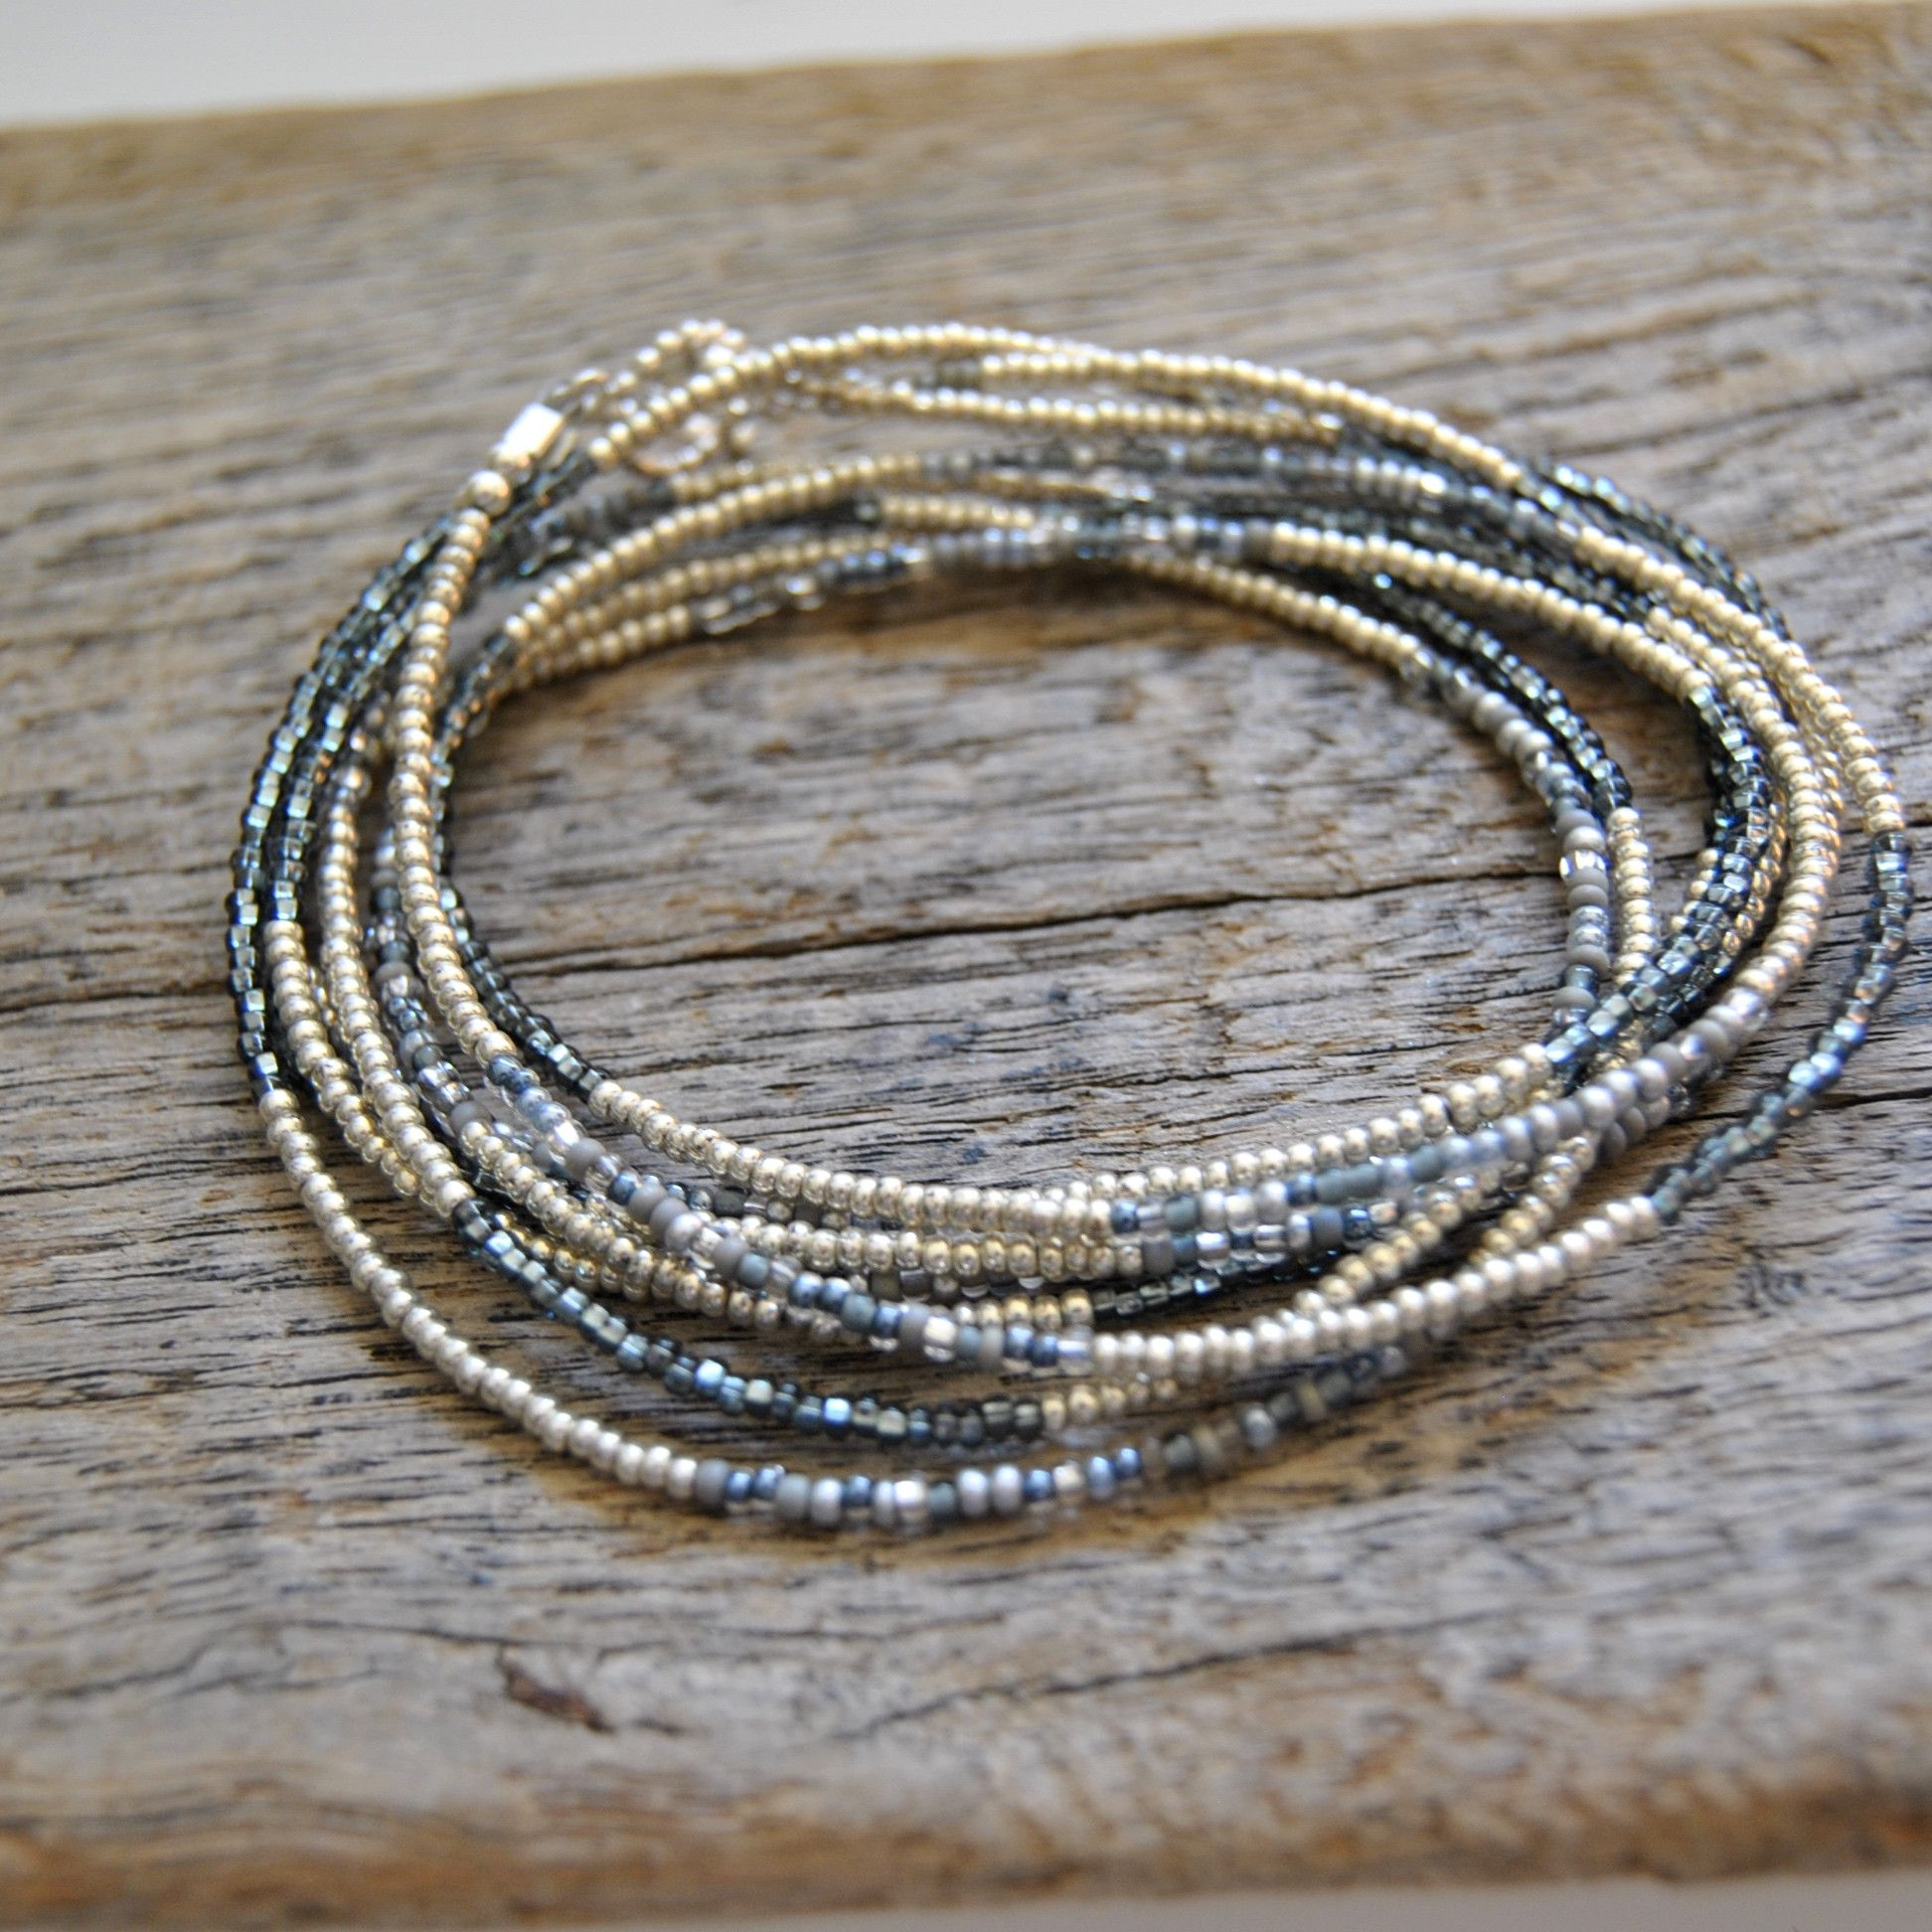 Seed Bead Wrap- Grey Mix and Silver from Beadorable Designs